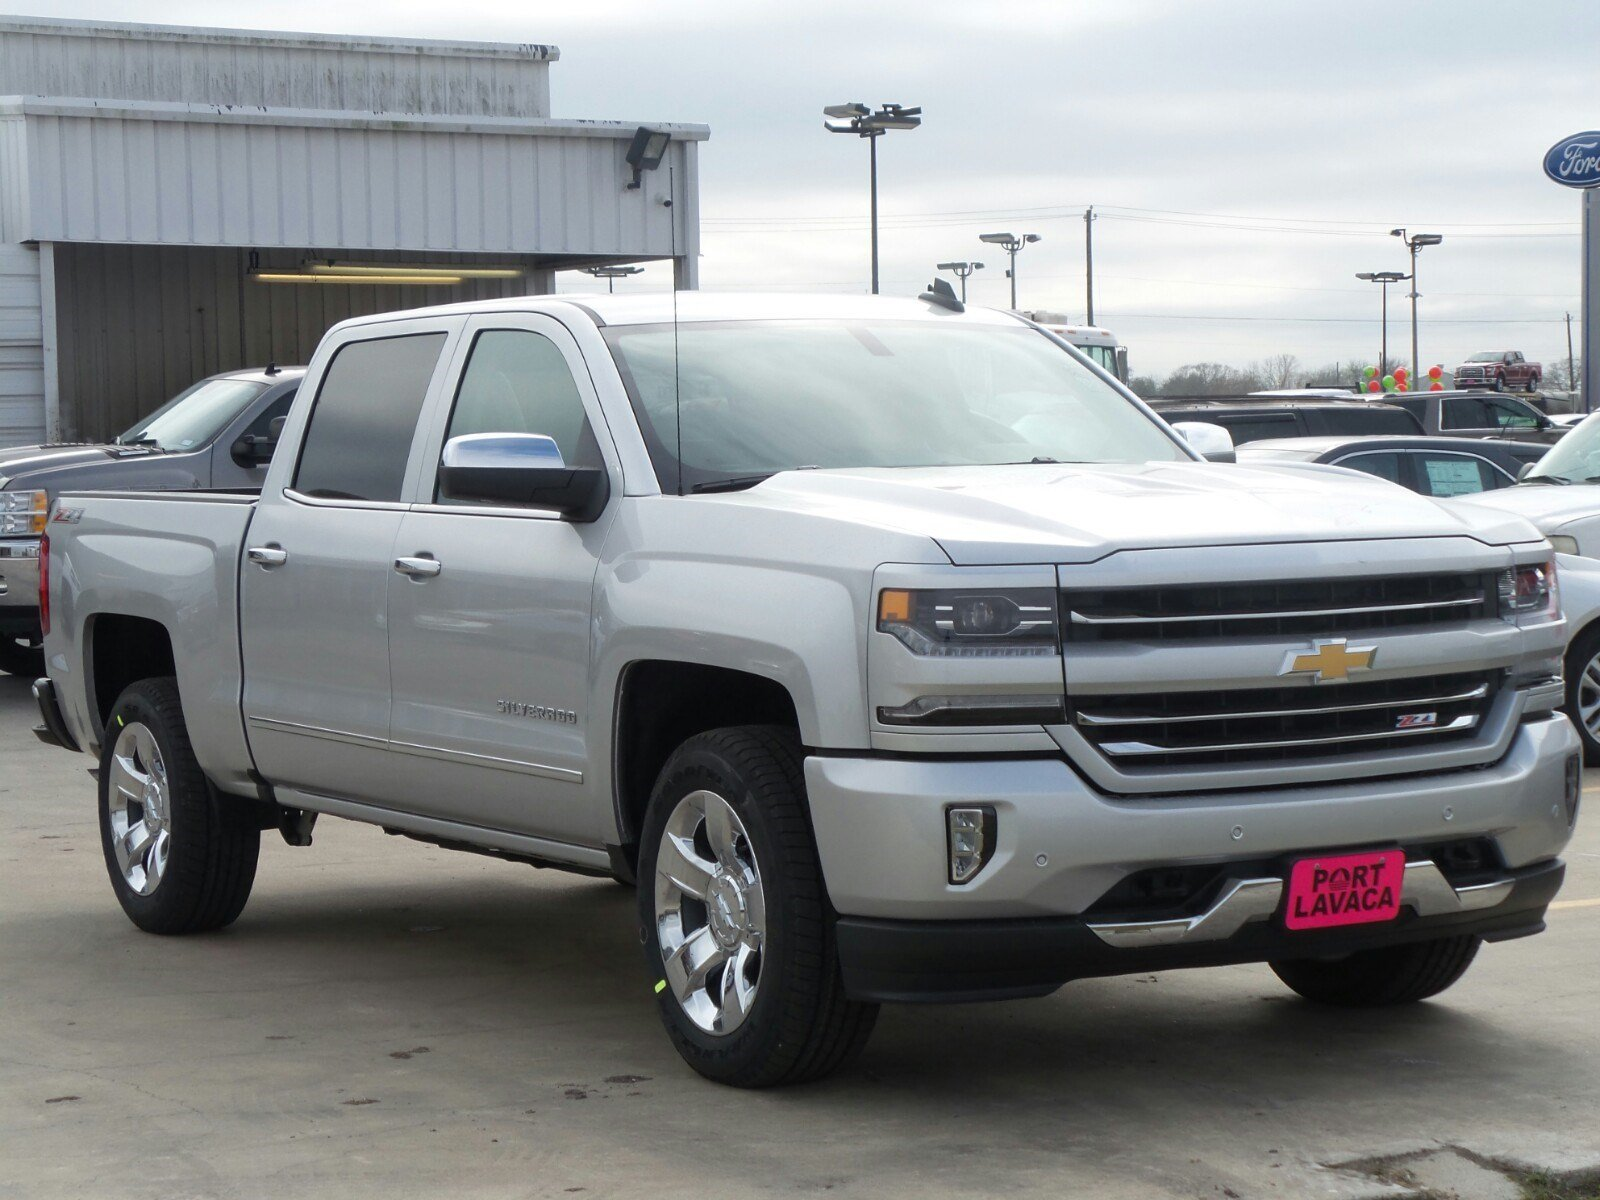 new 2017 chevrolet silverado 1500 ltz crew cab pickup in port lavaca g287918 port lavaca. Black Bedroom Furniture Sets. Home Design Ideas